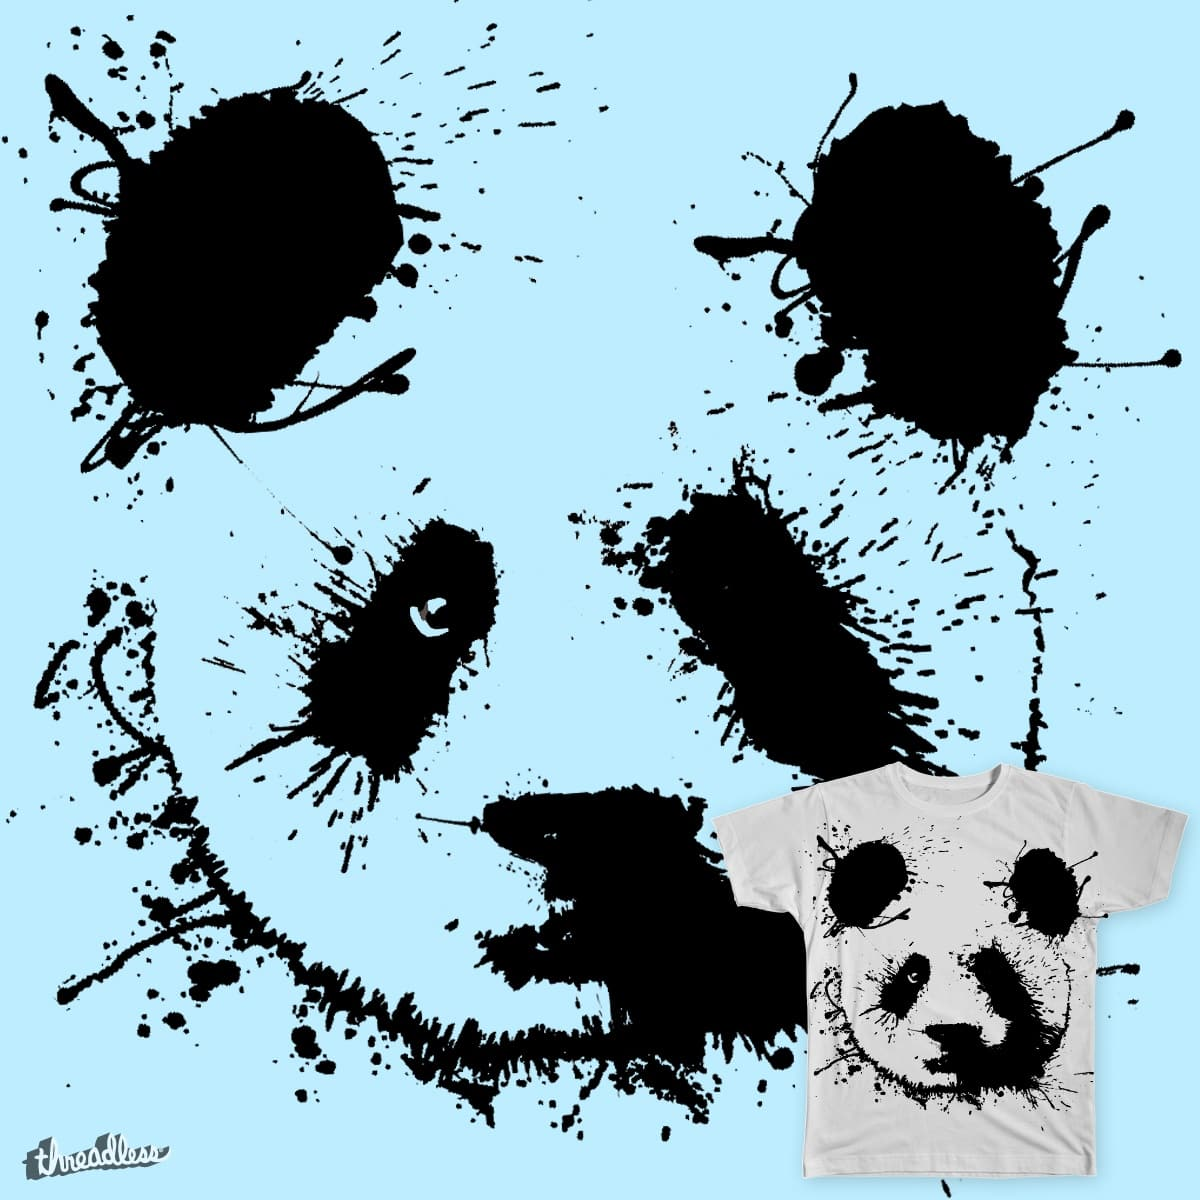 Splash Panda by PacoSalgado on Threadless